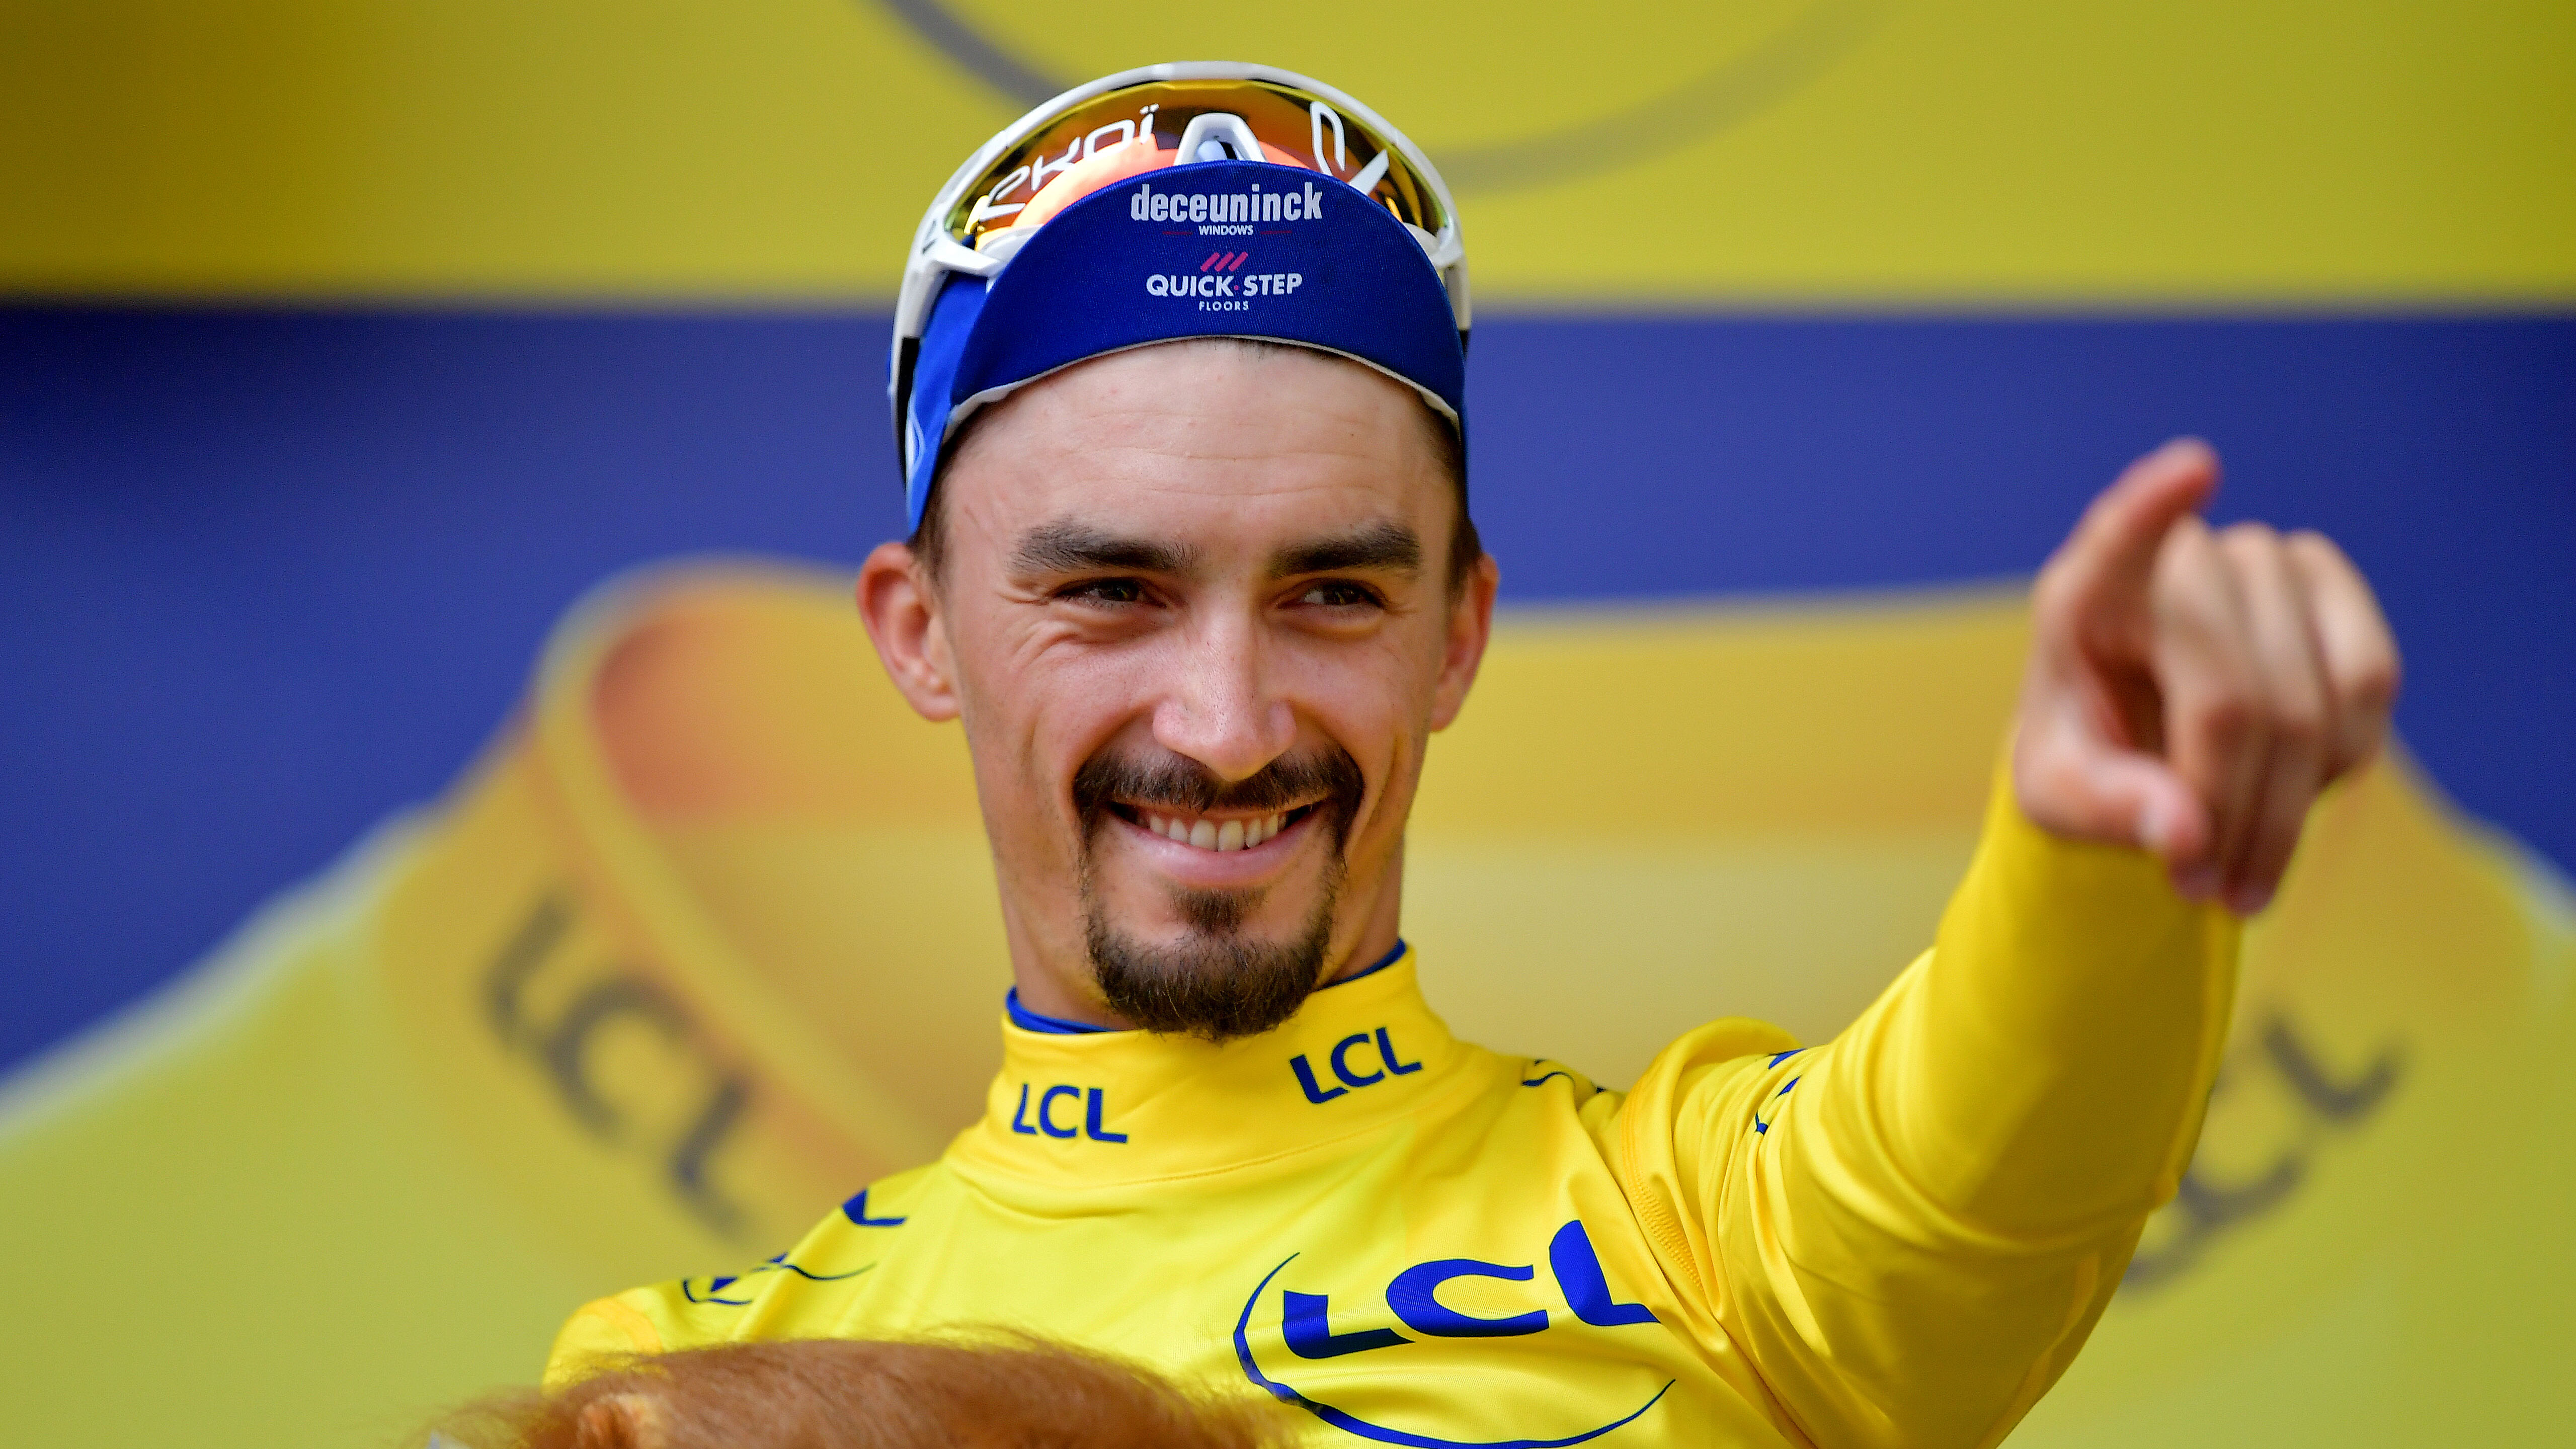 Julian Alaphillipe: Tour de France leader gives yellow jersey to kid